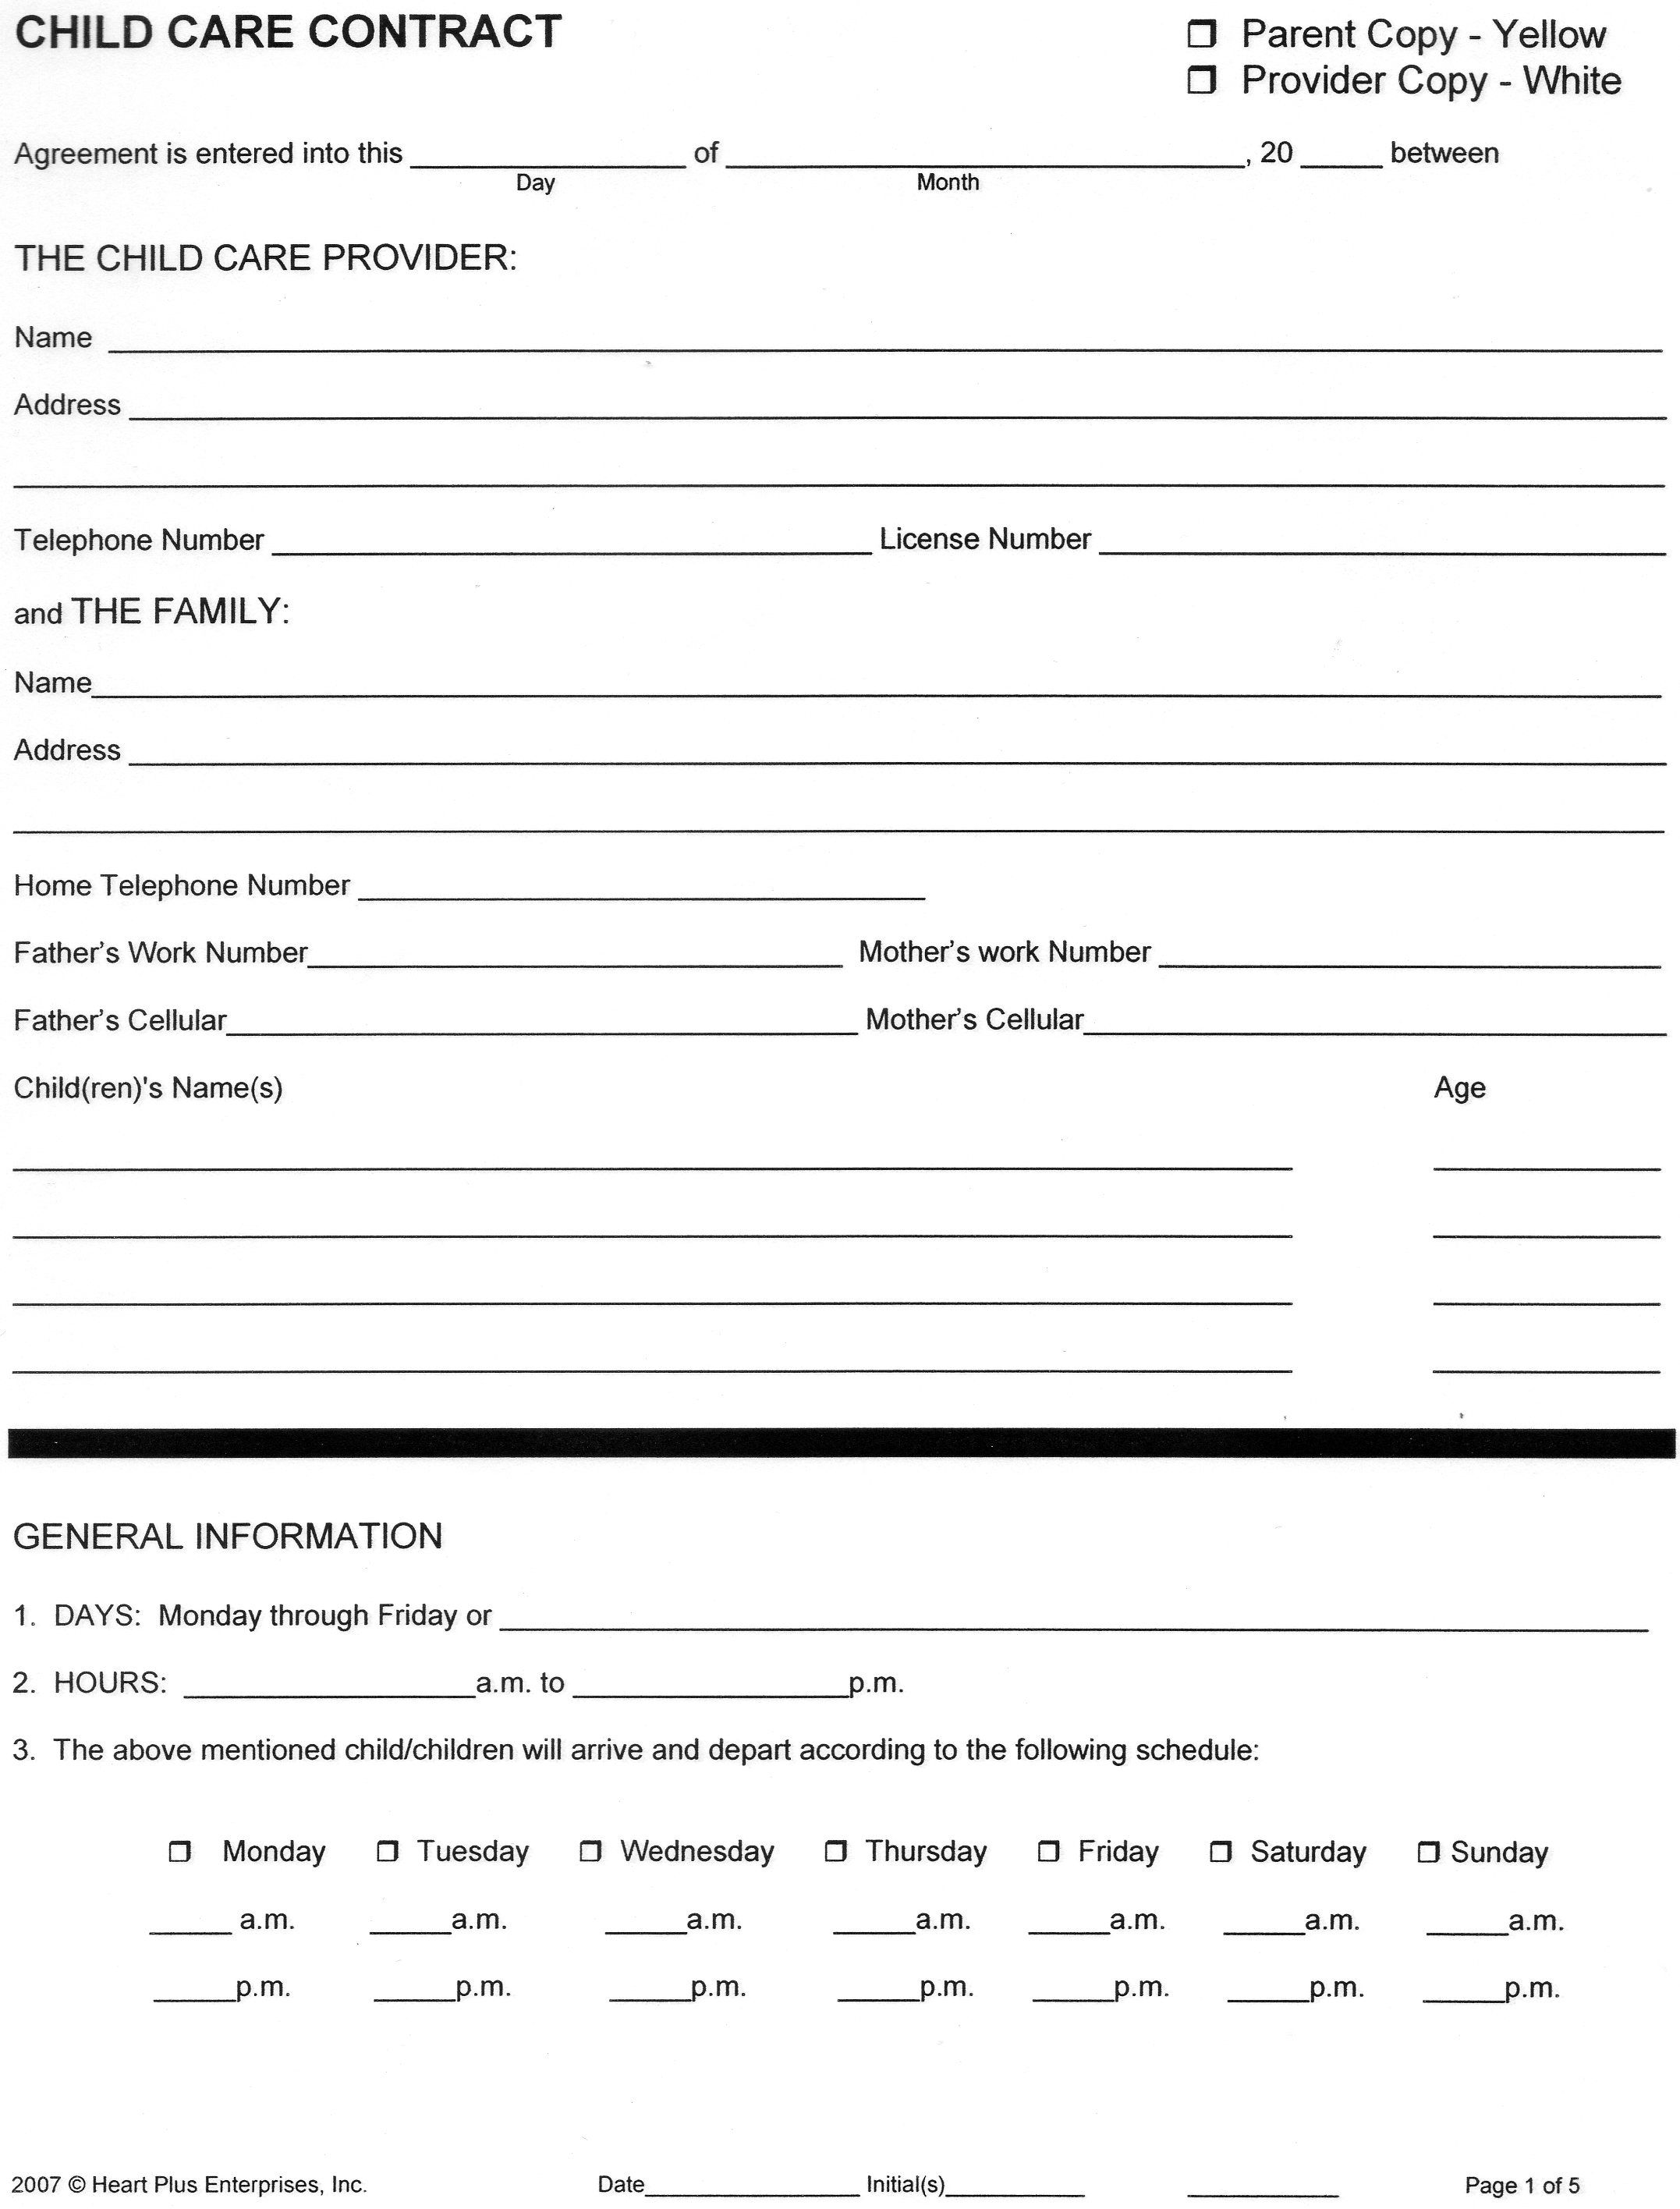 Home Child Care Forms Child Care Contract 1 With Images